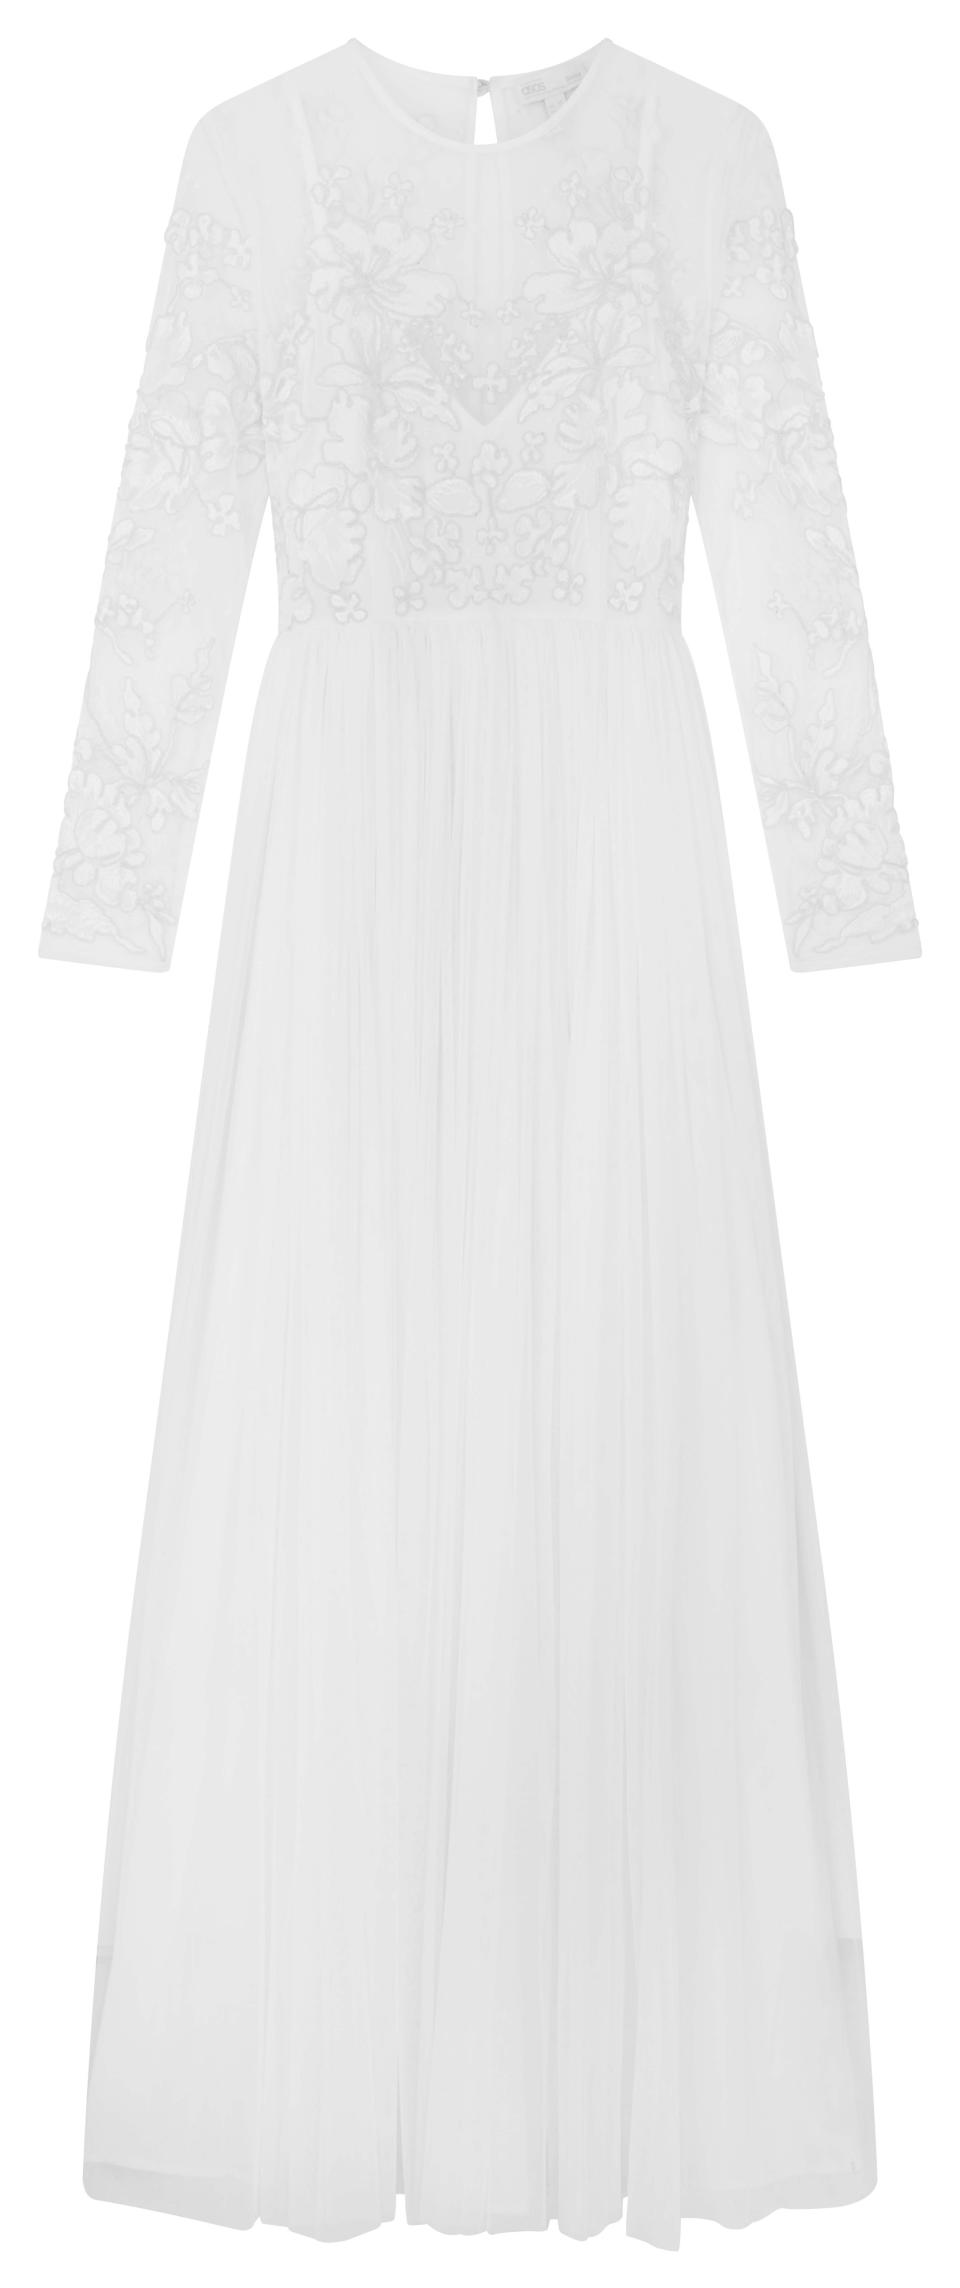 This $190 gown is similar to the wedding dress Bindi Irwin wore when she married Chandler Powell in March last year. Photo: ASOS